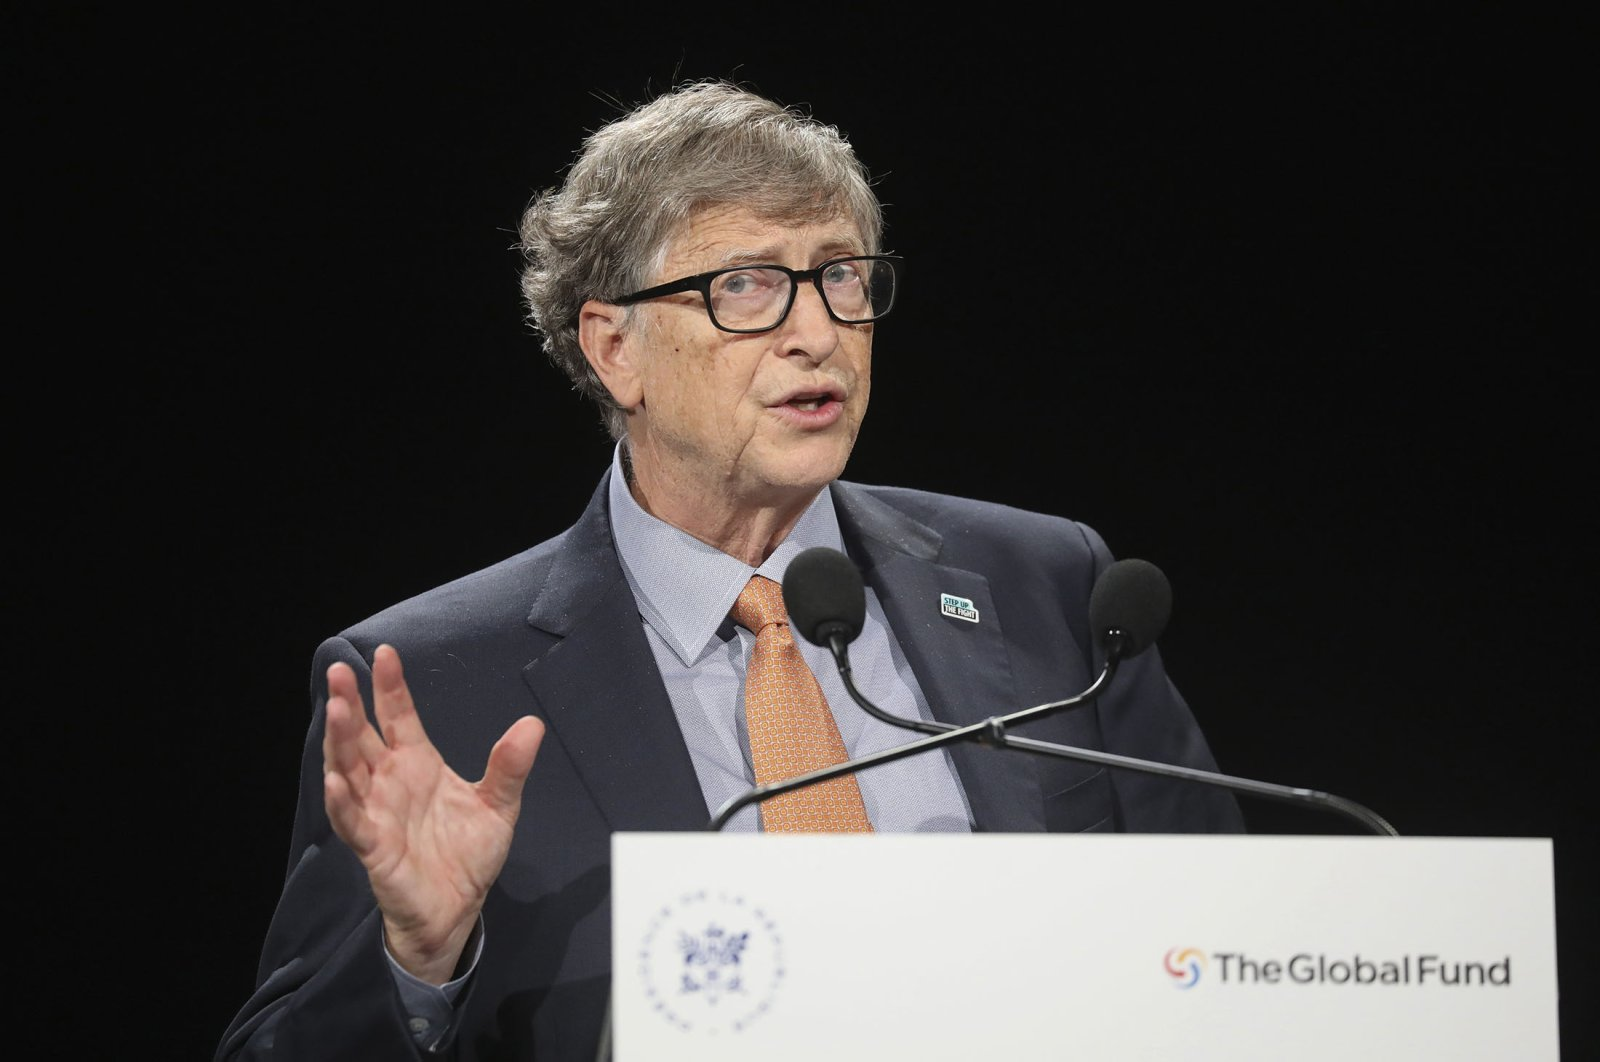 Philanthropist and Co-Chairman of the Bill & Melinda Gates Foundation Bill Gates gestures as he speaks to the audience during the Global Fund to Fight AIDS event, Lyon, France, Oct. 10, 2019. (AP Photo)